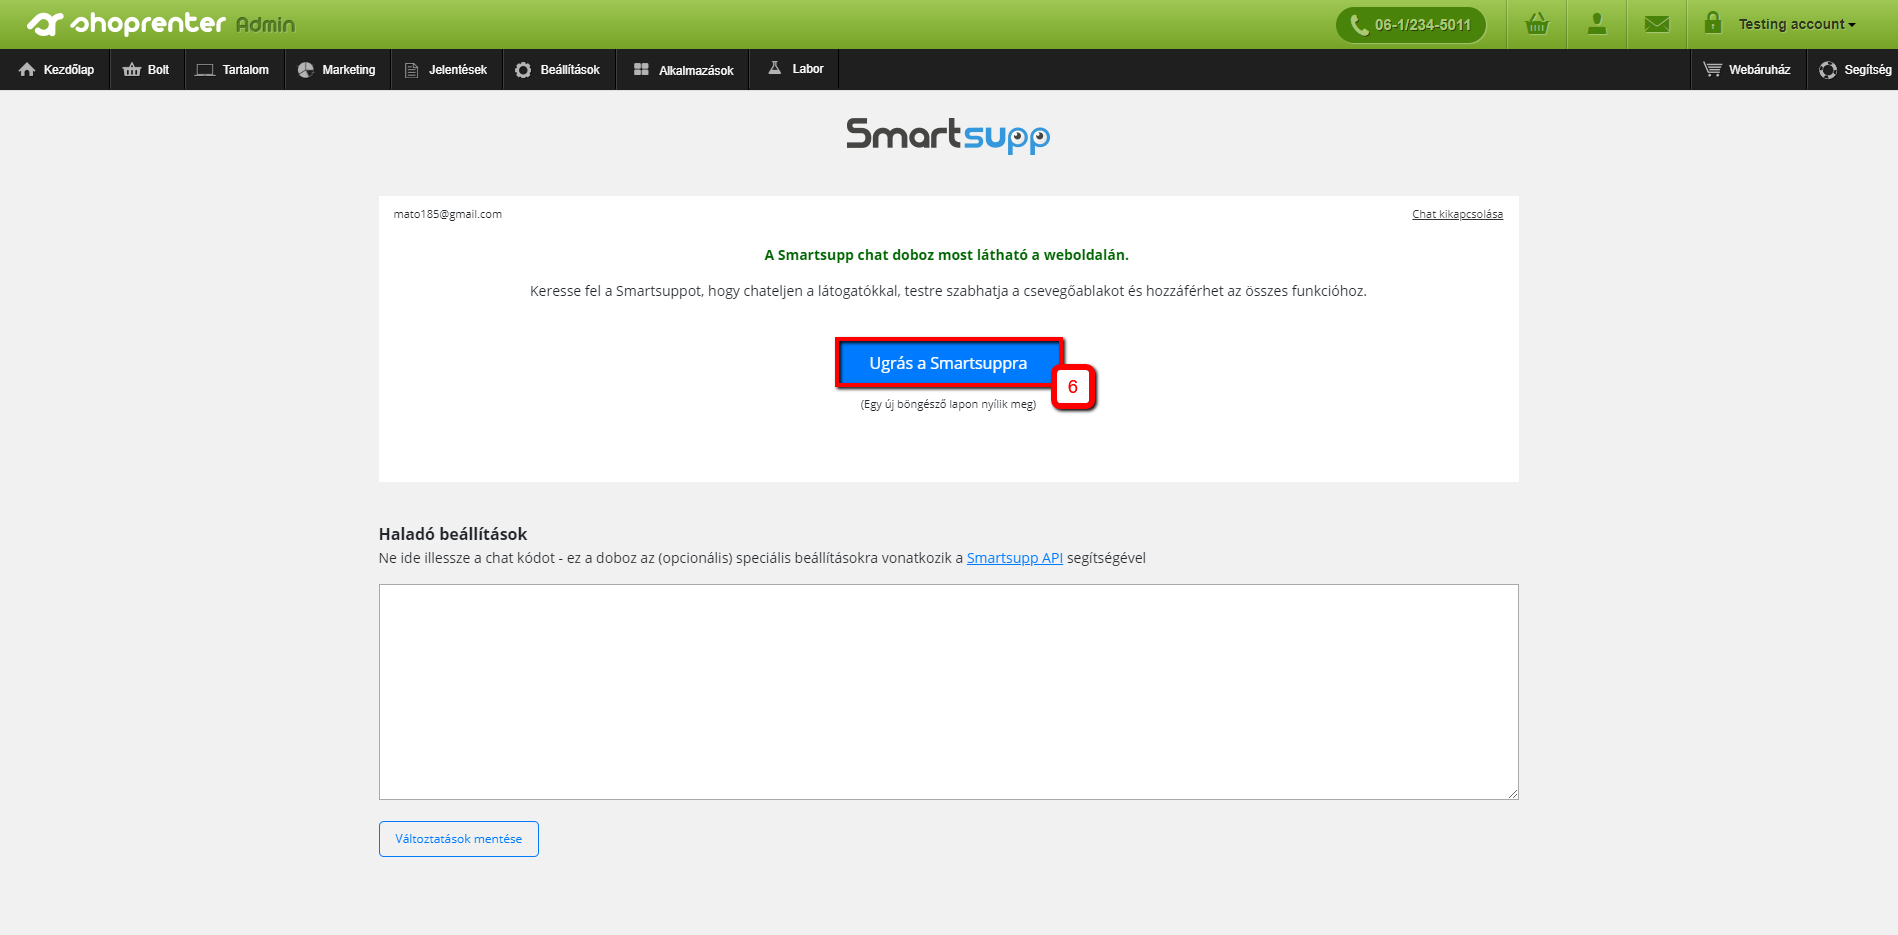 smartsupp-shoprenter-en-04